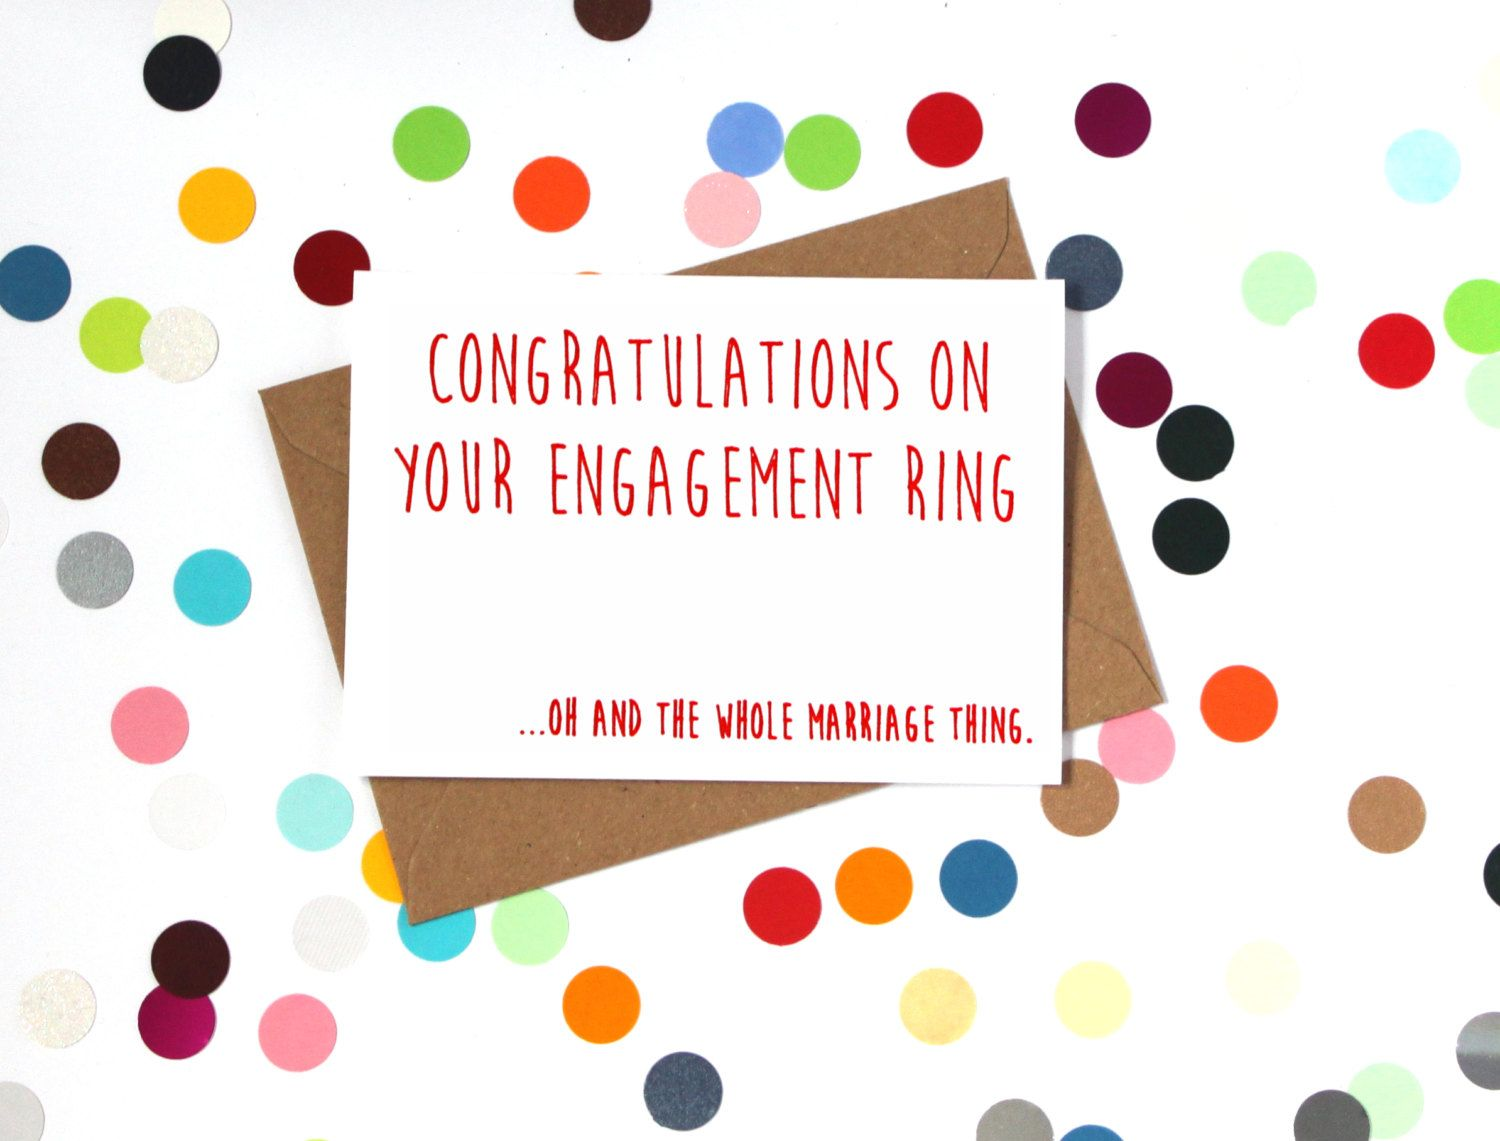 Funny Engagement Card Wedding Congratulations On Your Ring Oh And The Whole Marriage Thing